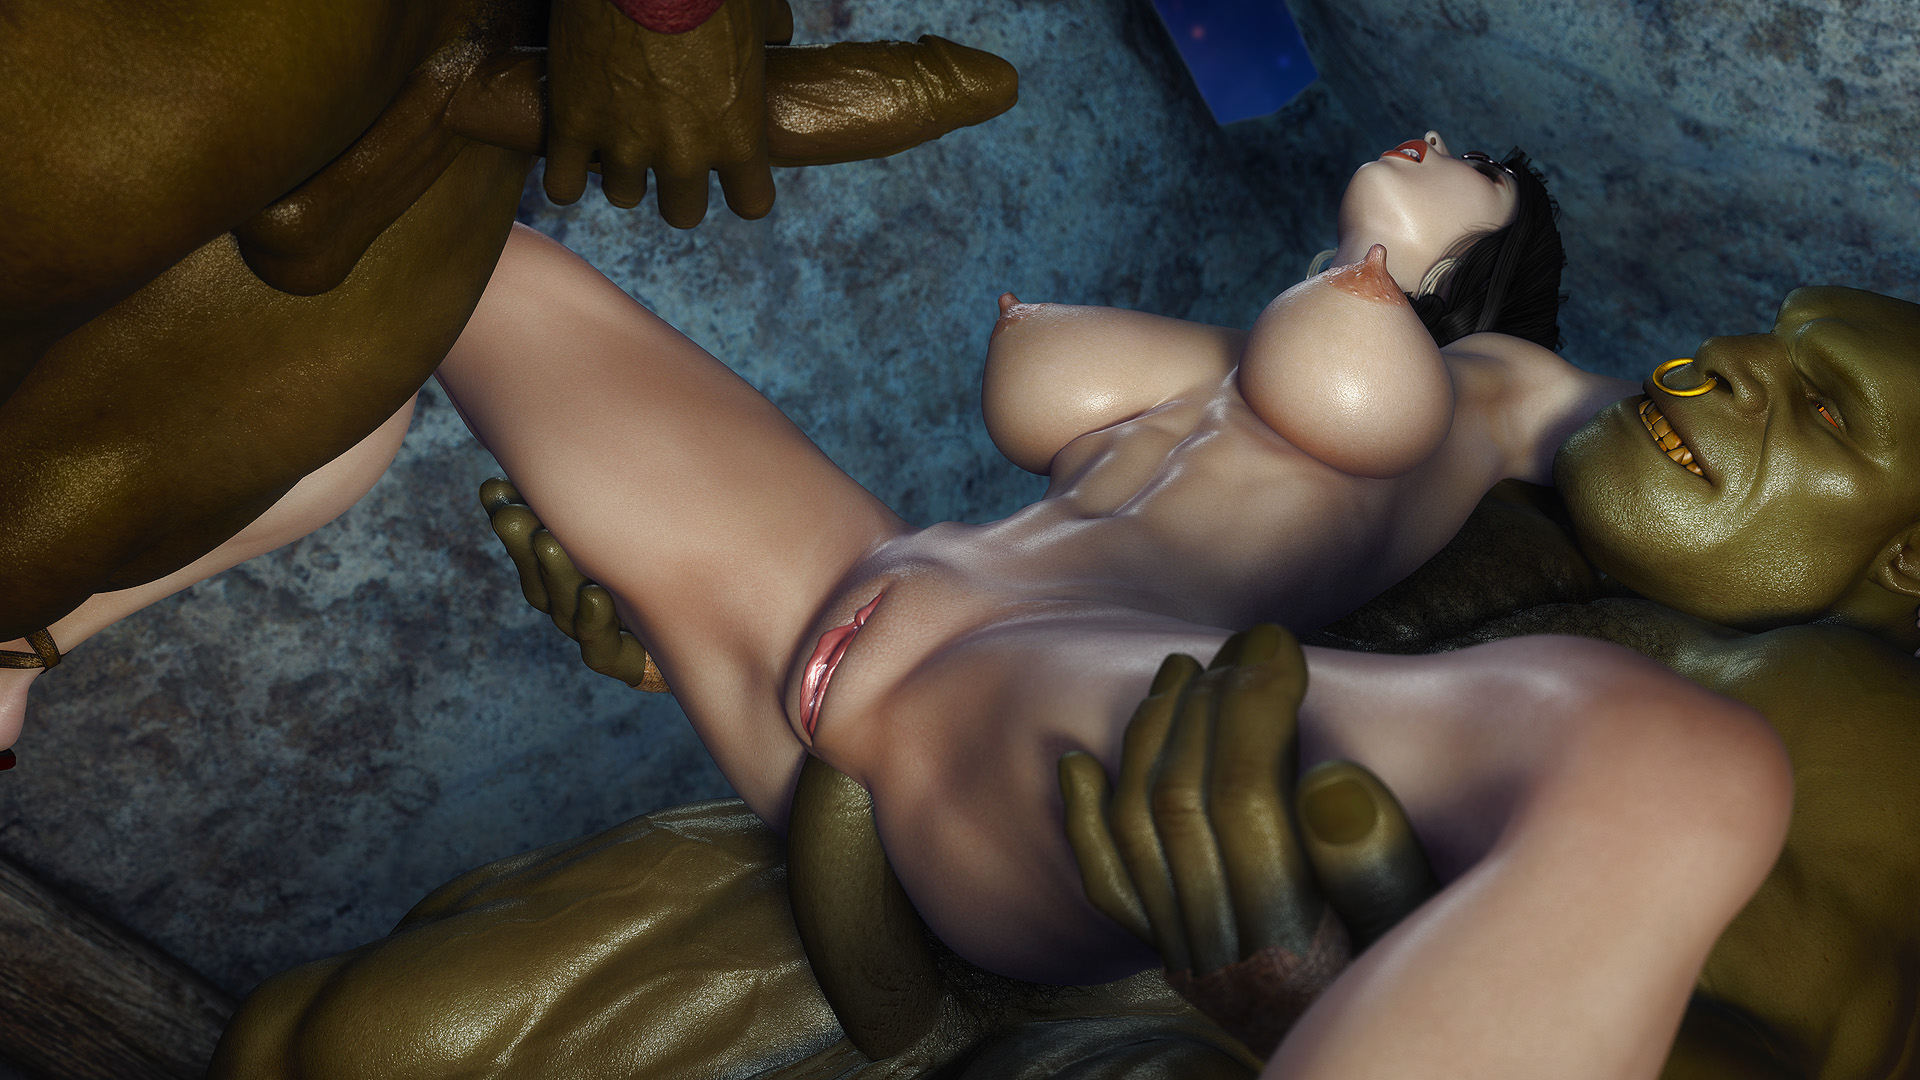 Xxx hd 3d cartoon wallpaper sexy photos